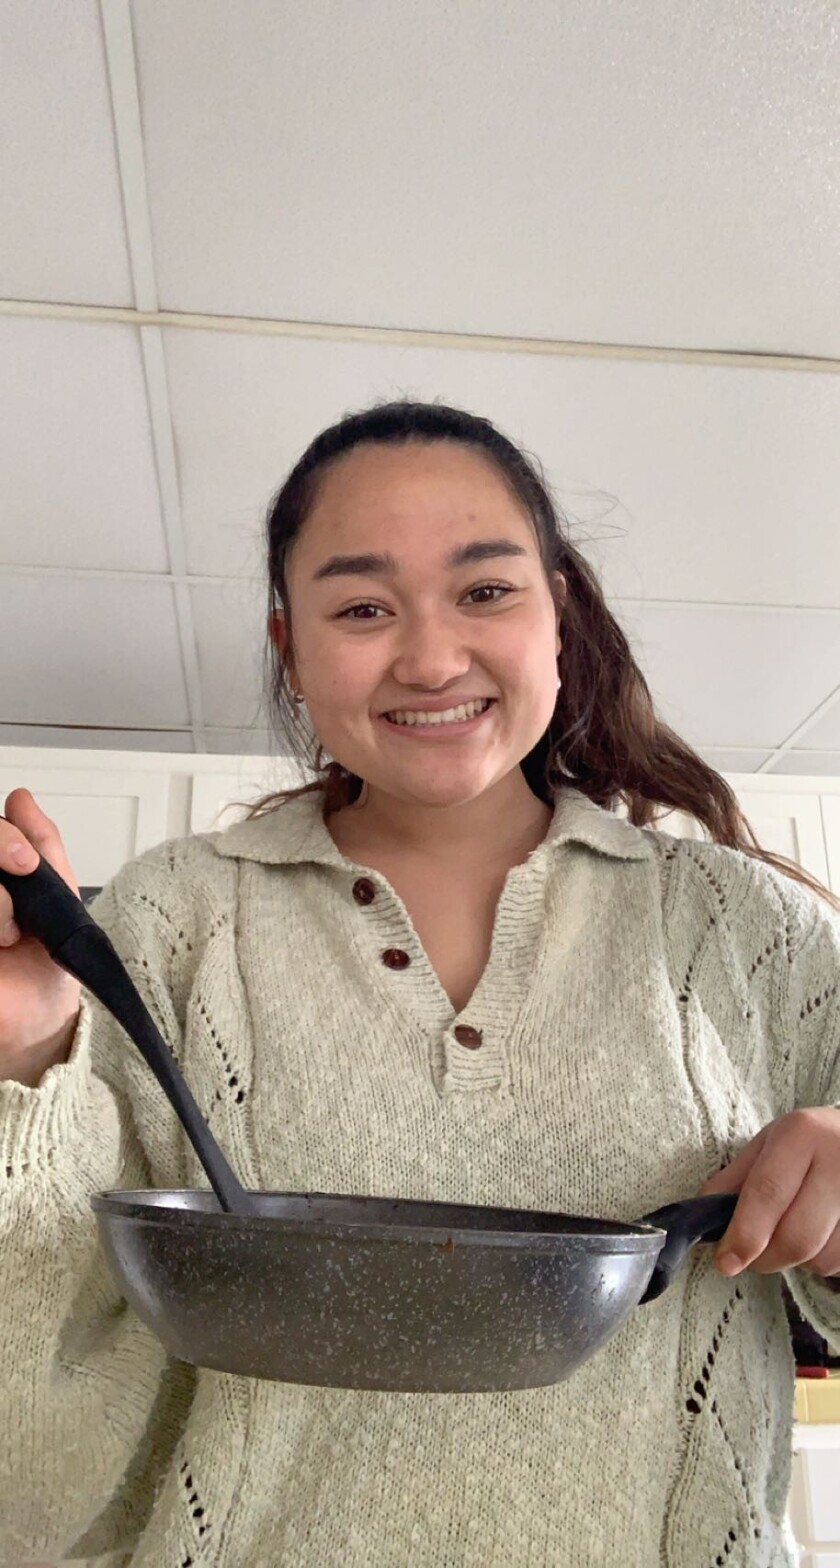 La Jolla High School senior and Girl Scout Lauren Nitahara launched a series of videos to teach children how to cook.